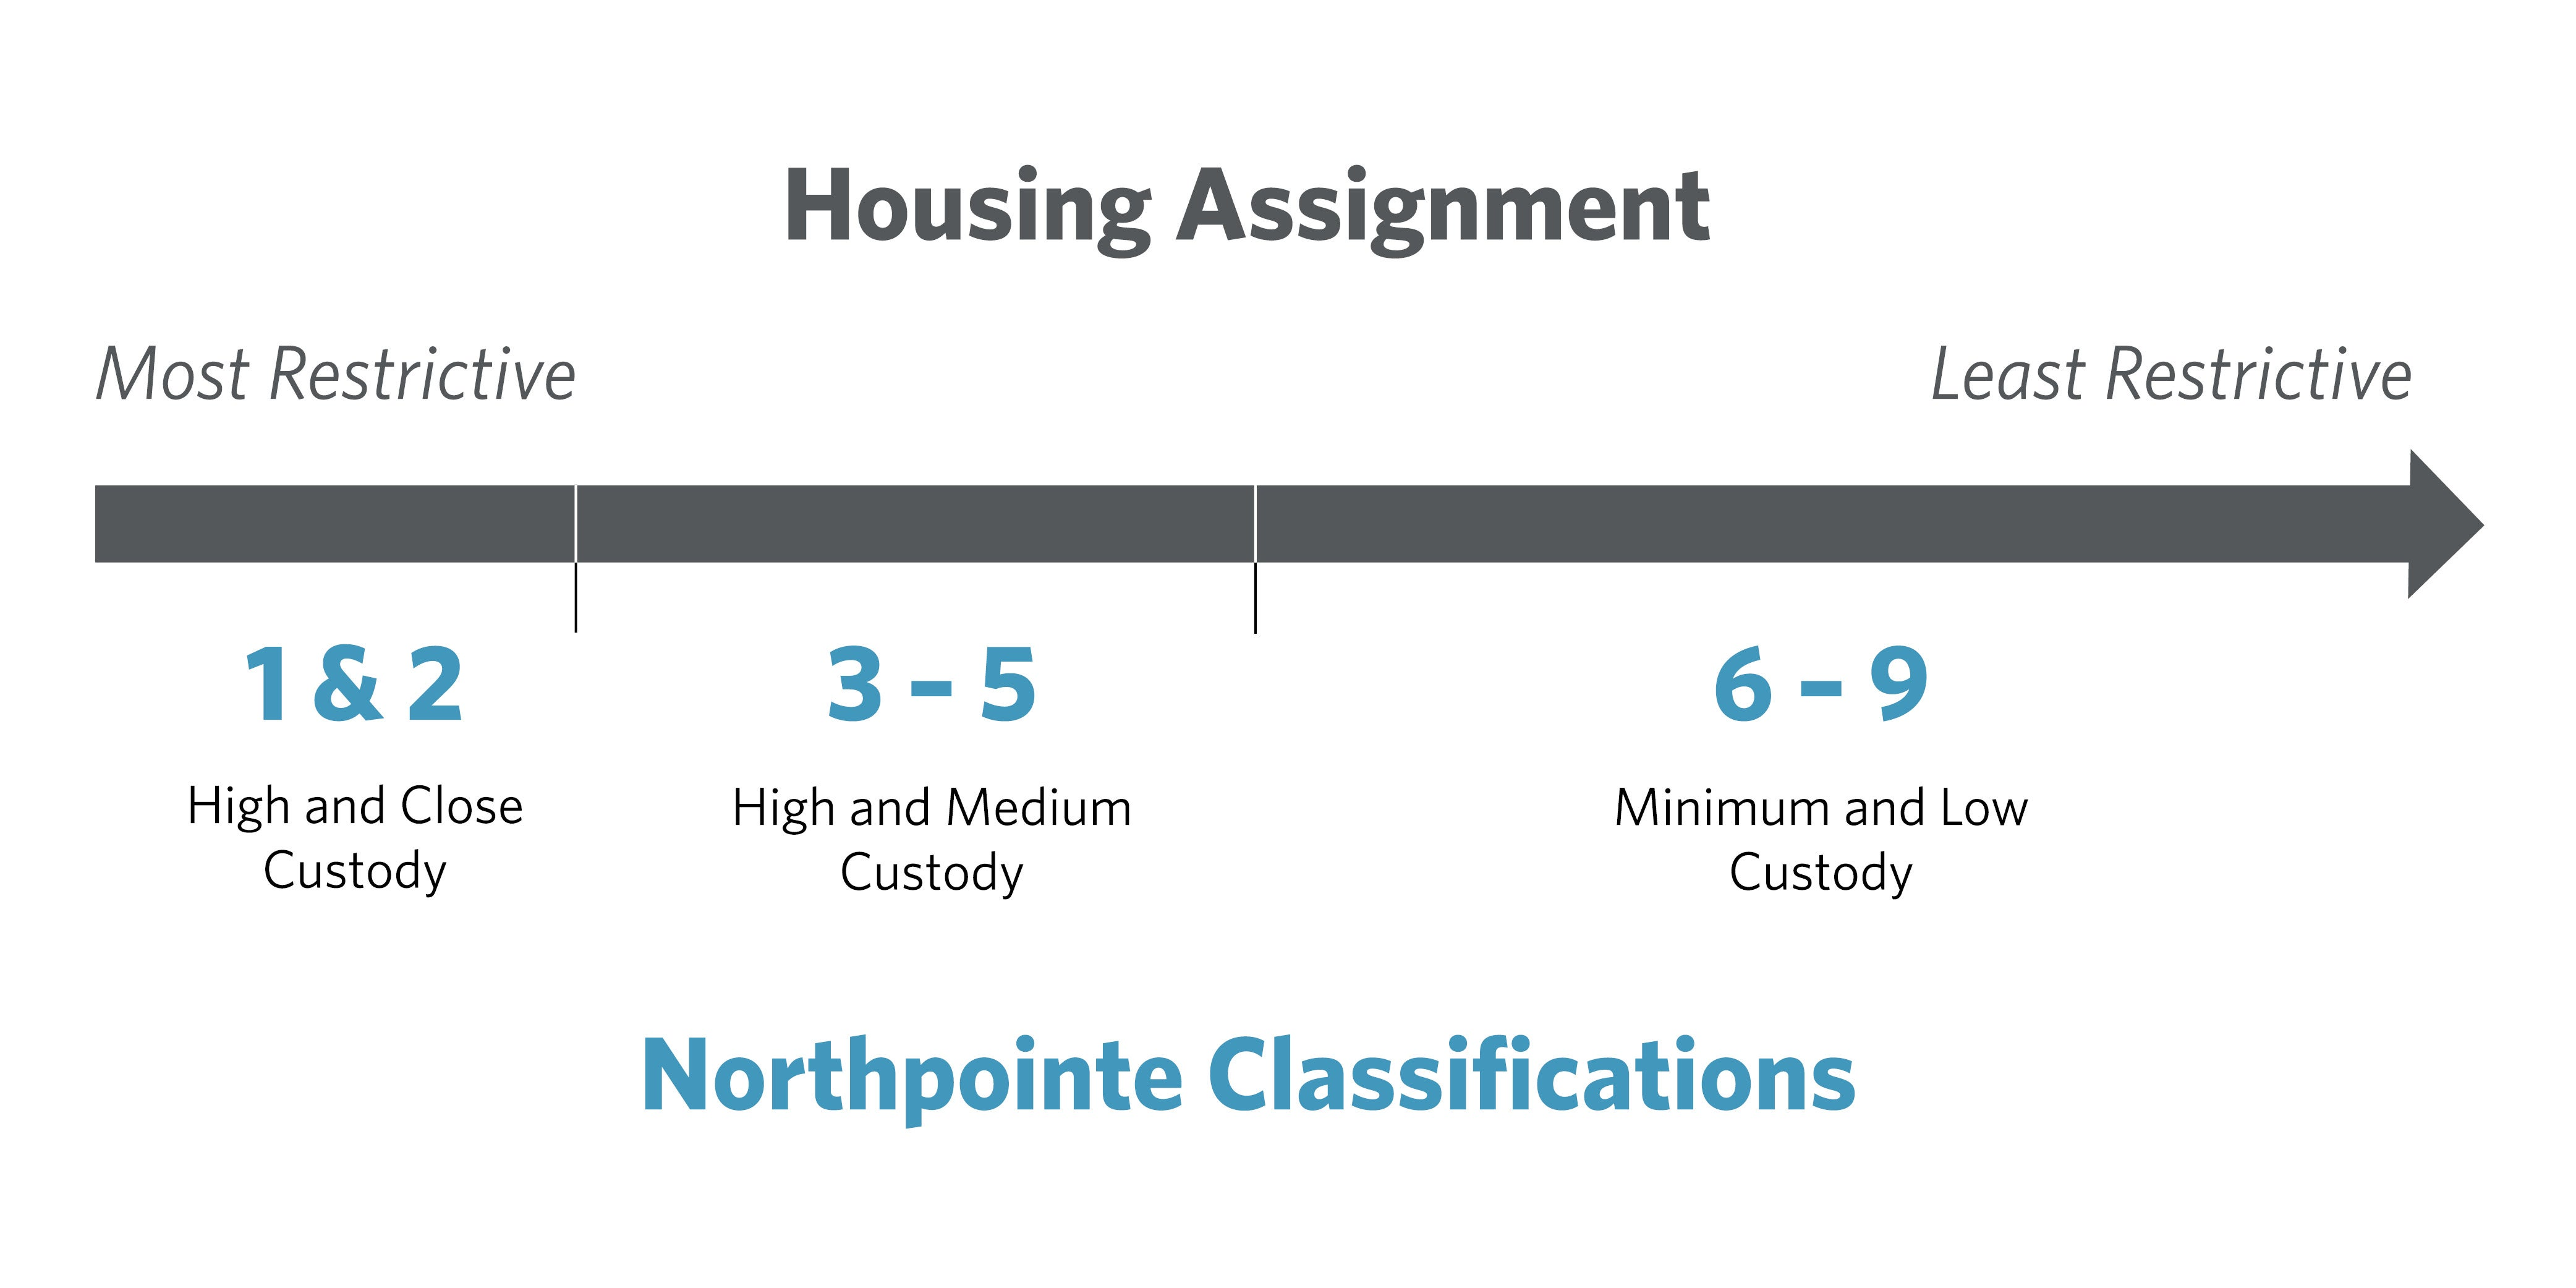 Northpointe classification